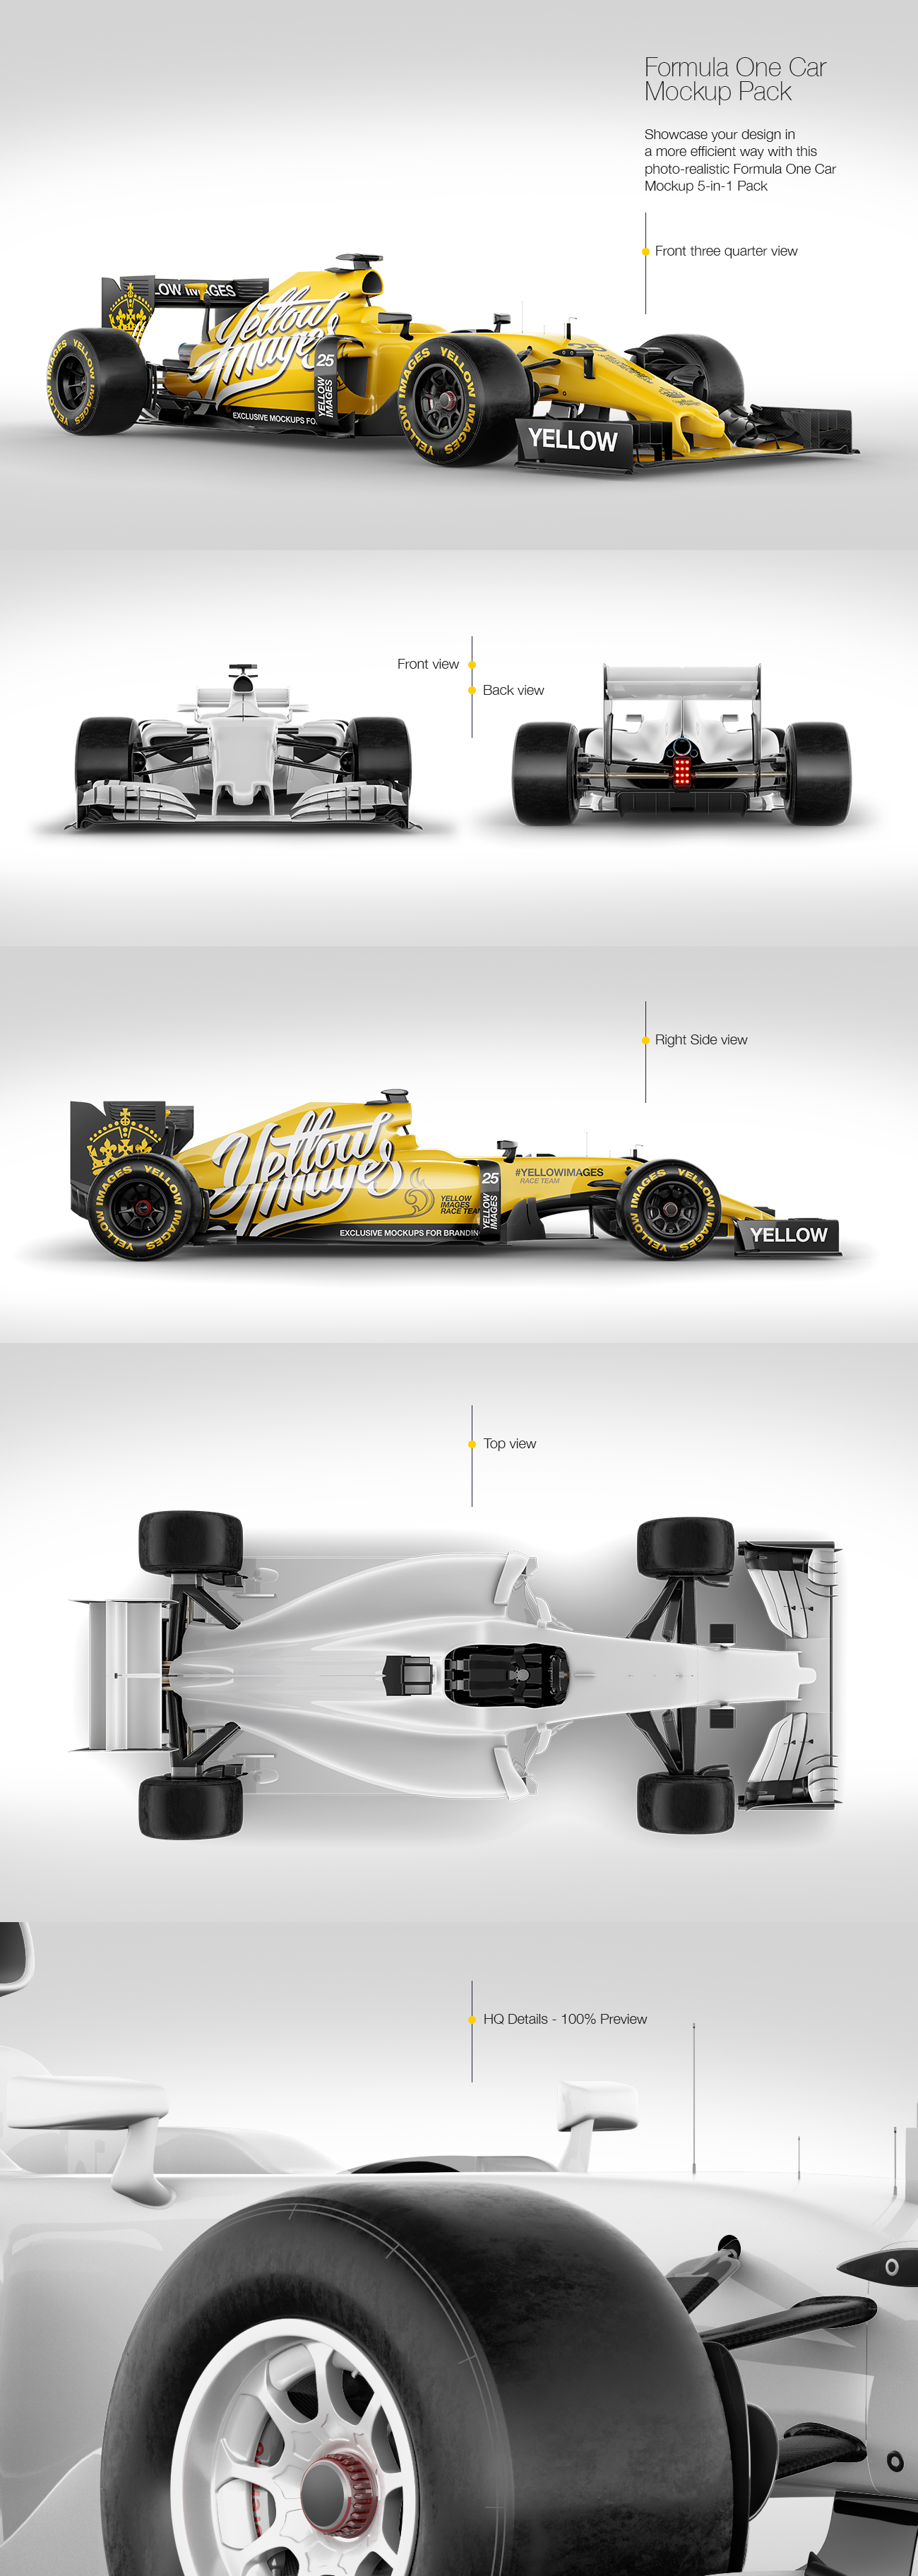 Download Formula One Car Mockup Pack In Handpicked Sets Of Vehicles On Yellow Images Creative Store PSD Mockup Templates